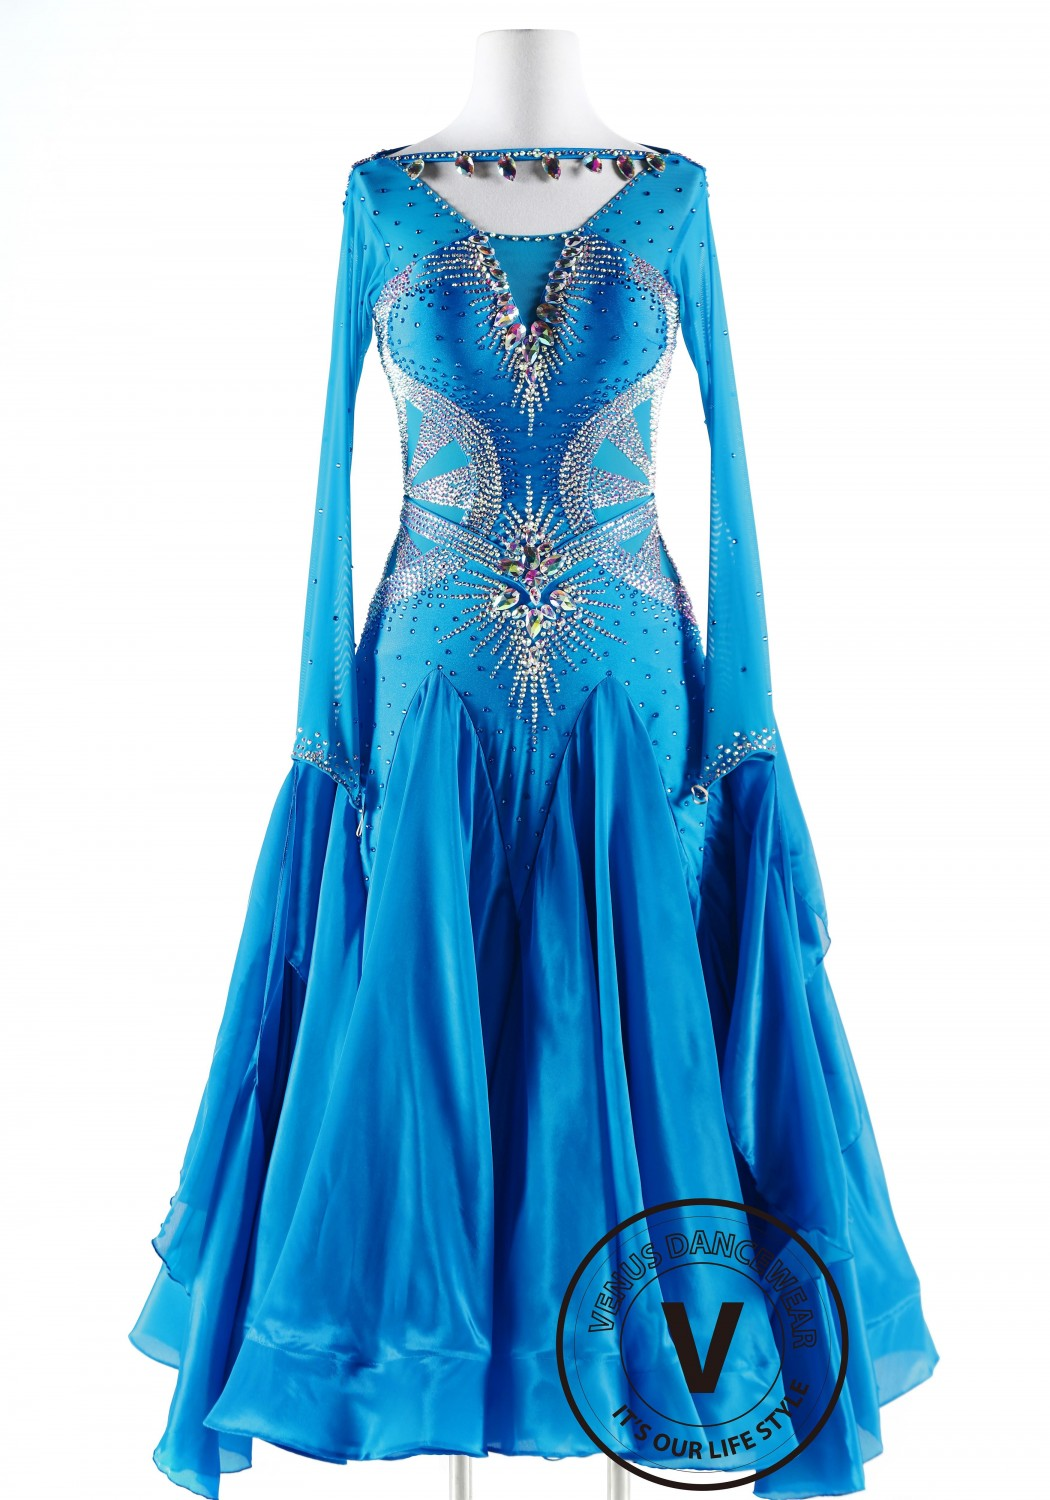 Lake Spirit Luxury Satin Chiffon Ballroom Competition Dance Dress